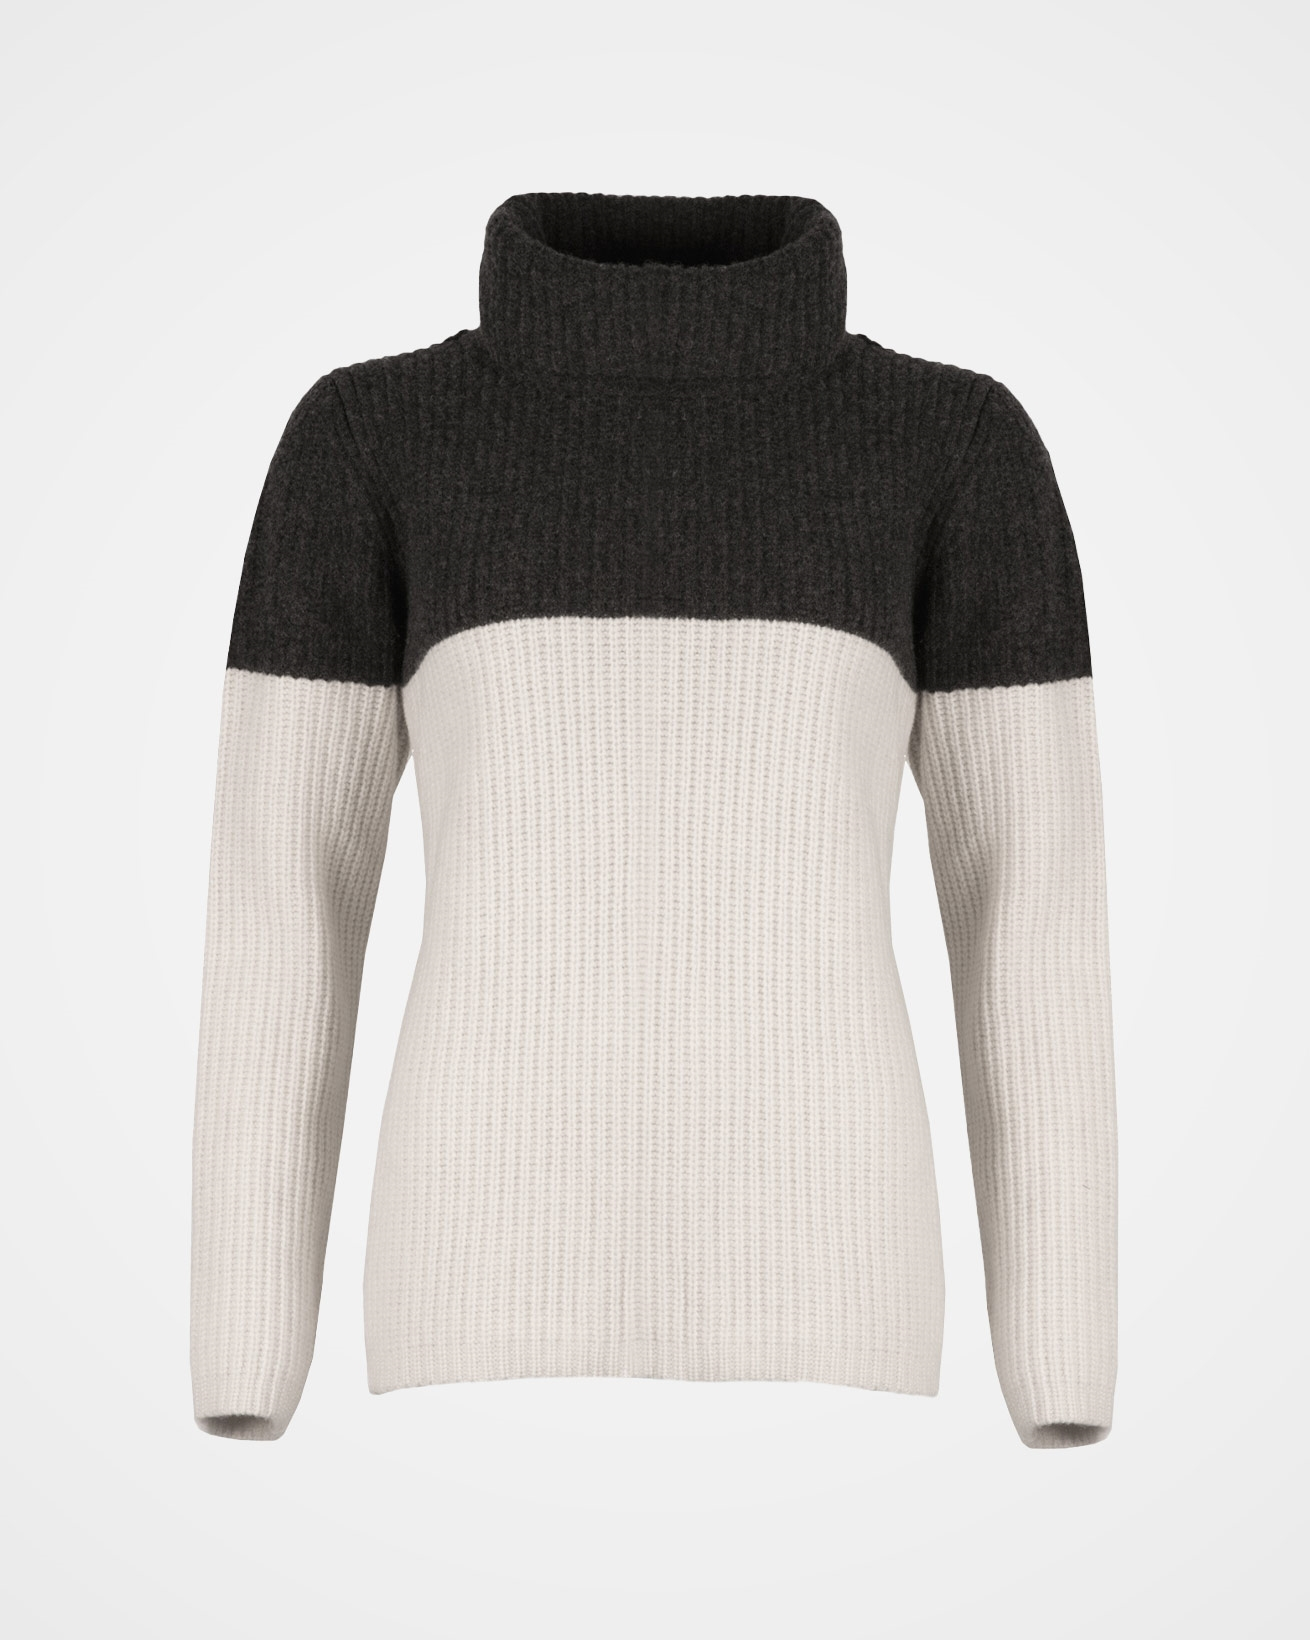 7399_colourblock-roll-neck_ecru-charcoal_front.jpg